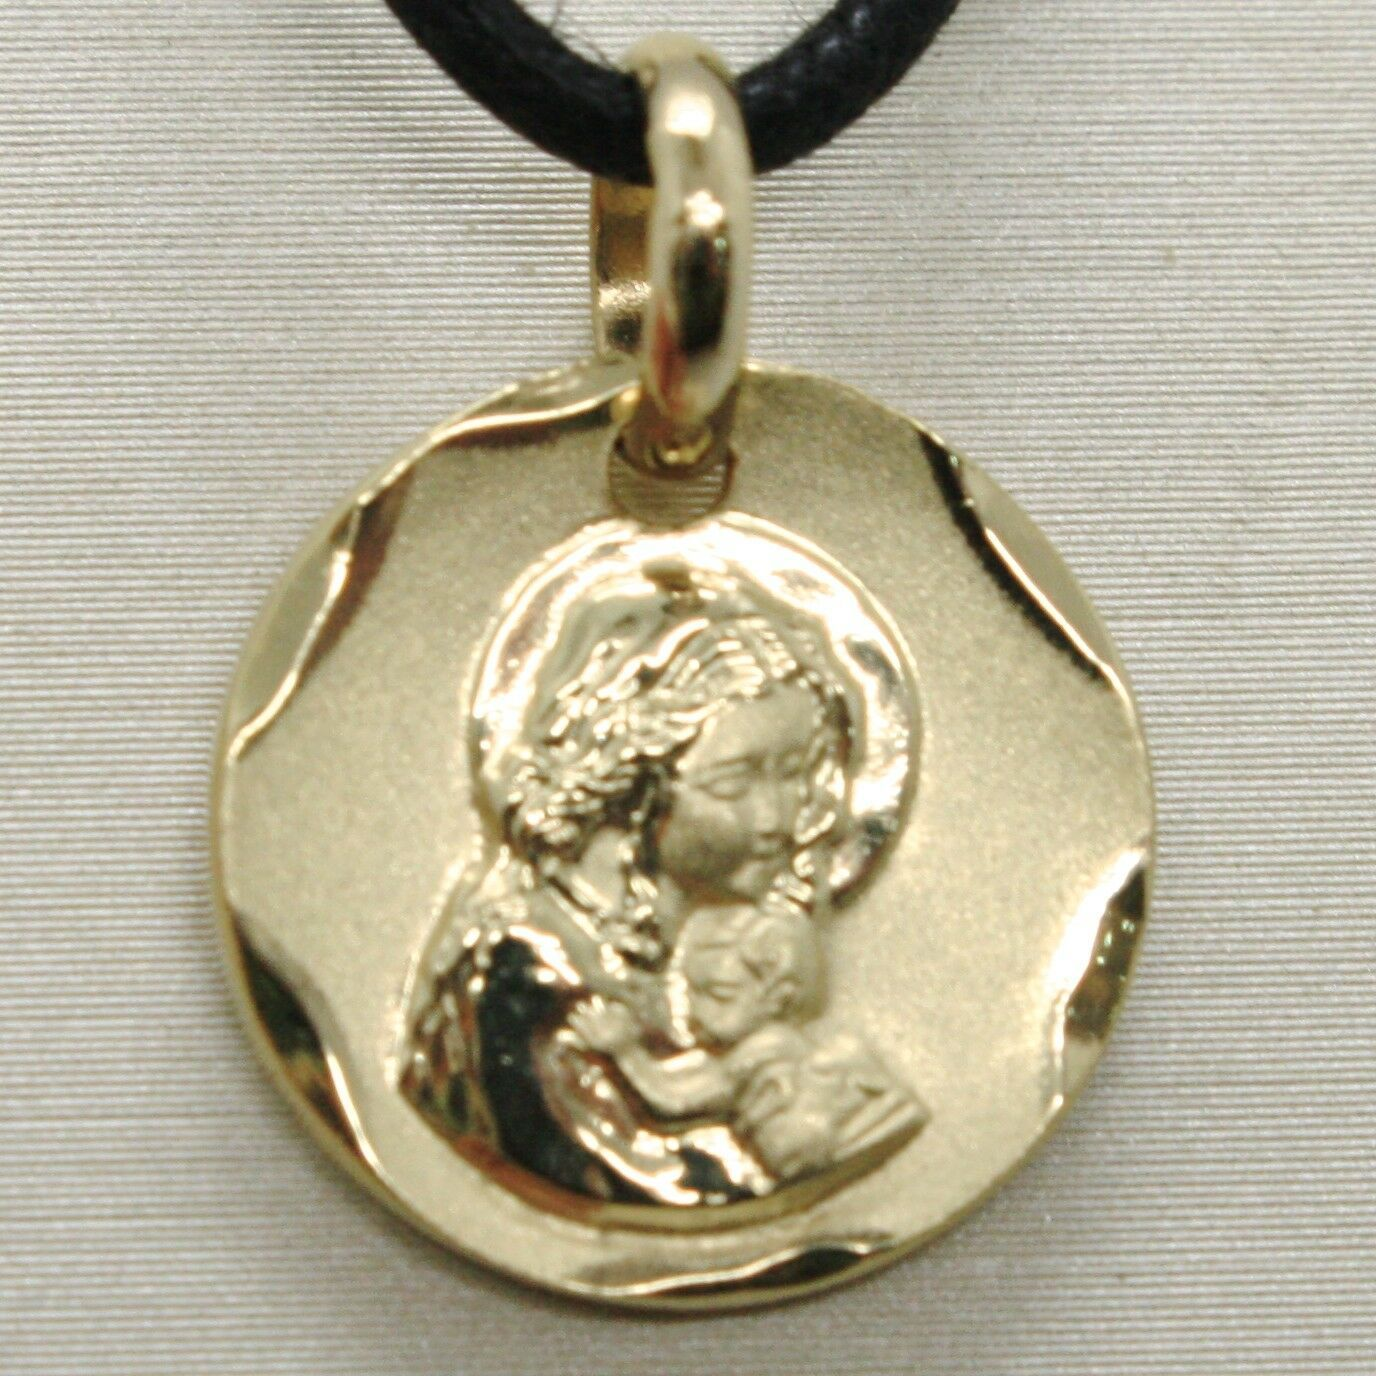 SOLID 18K YELLOW GOLD VIRGIN MARY AND JESUS 14 MM MEDAL, PENDANT, MADE IN ITALY